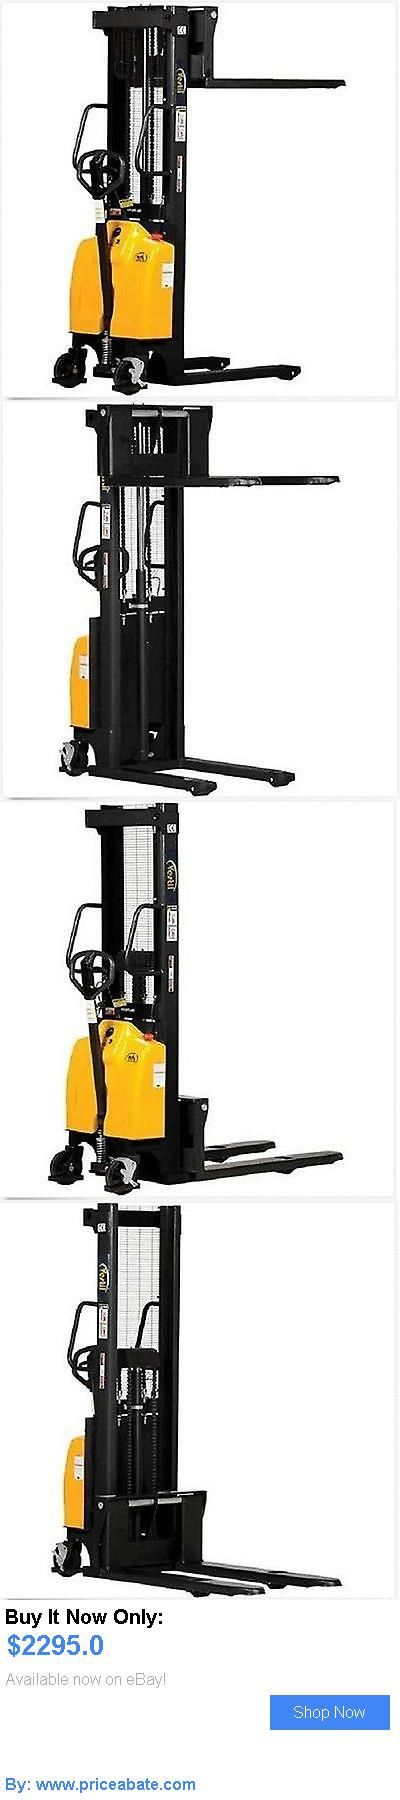 heavy equipment: Combination Battery Powered And Hand Pump Lift High Pallet Jack Stacker 98 Lift! BUY IT NOW ONLY: $2295.0 #priceabateheavyequipment OR #priceabate